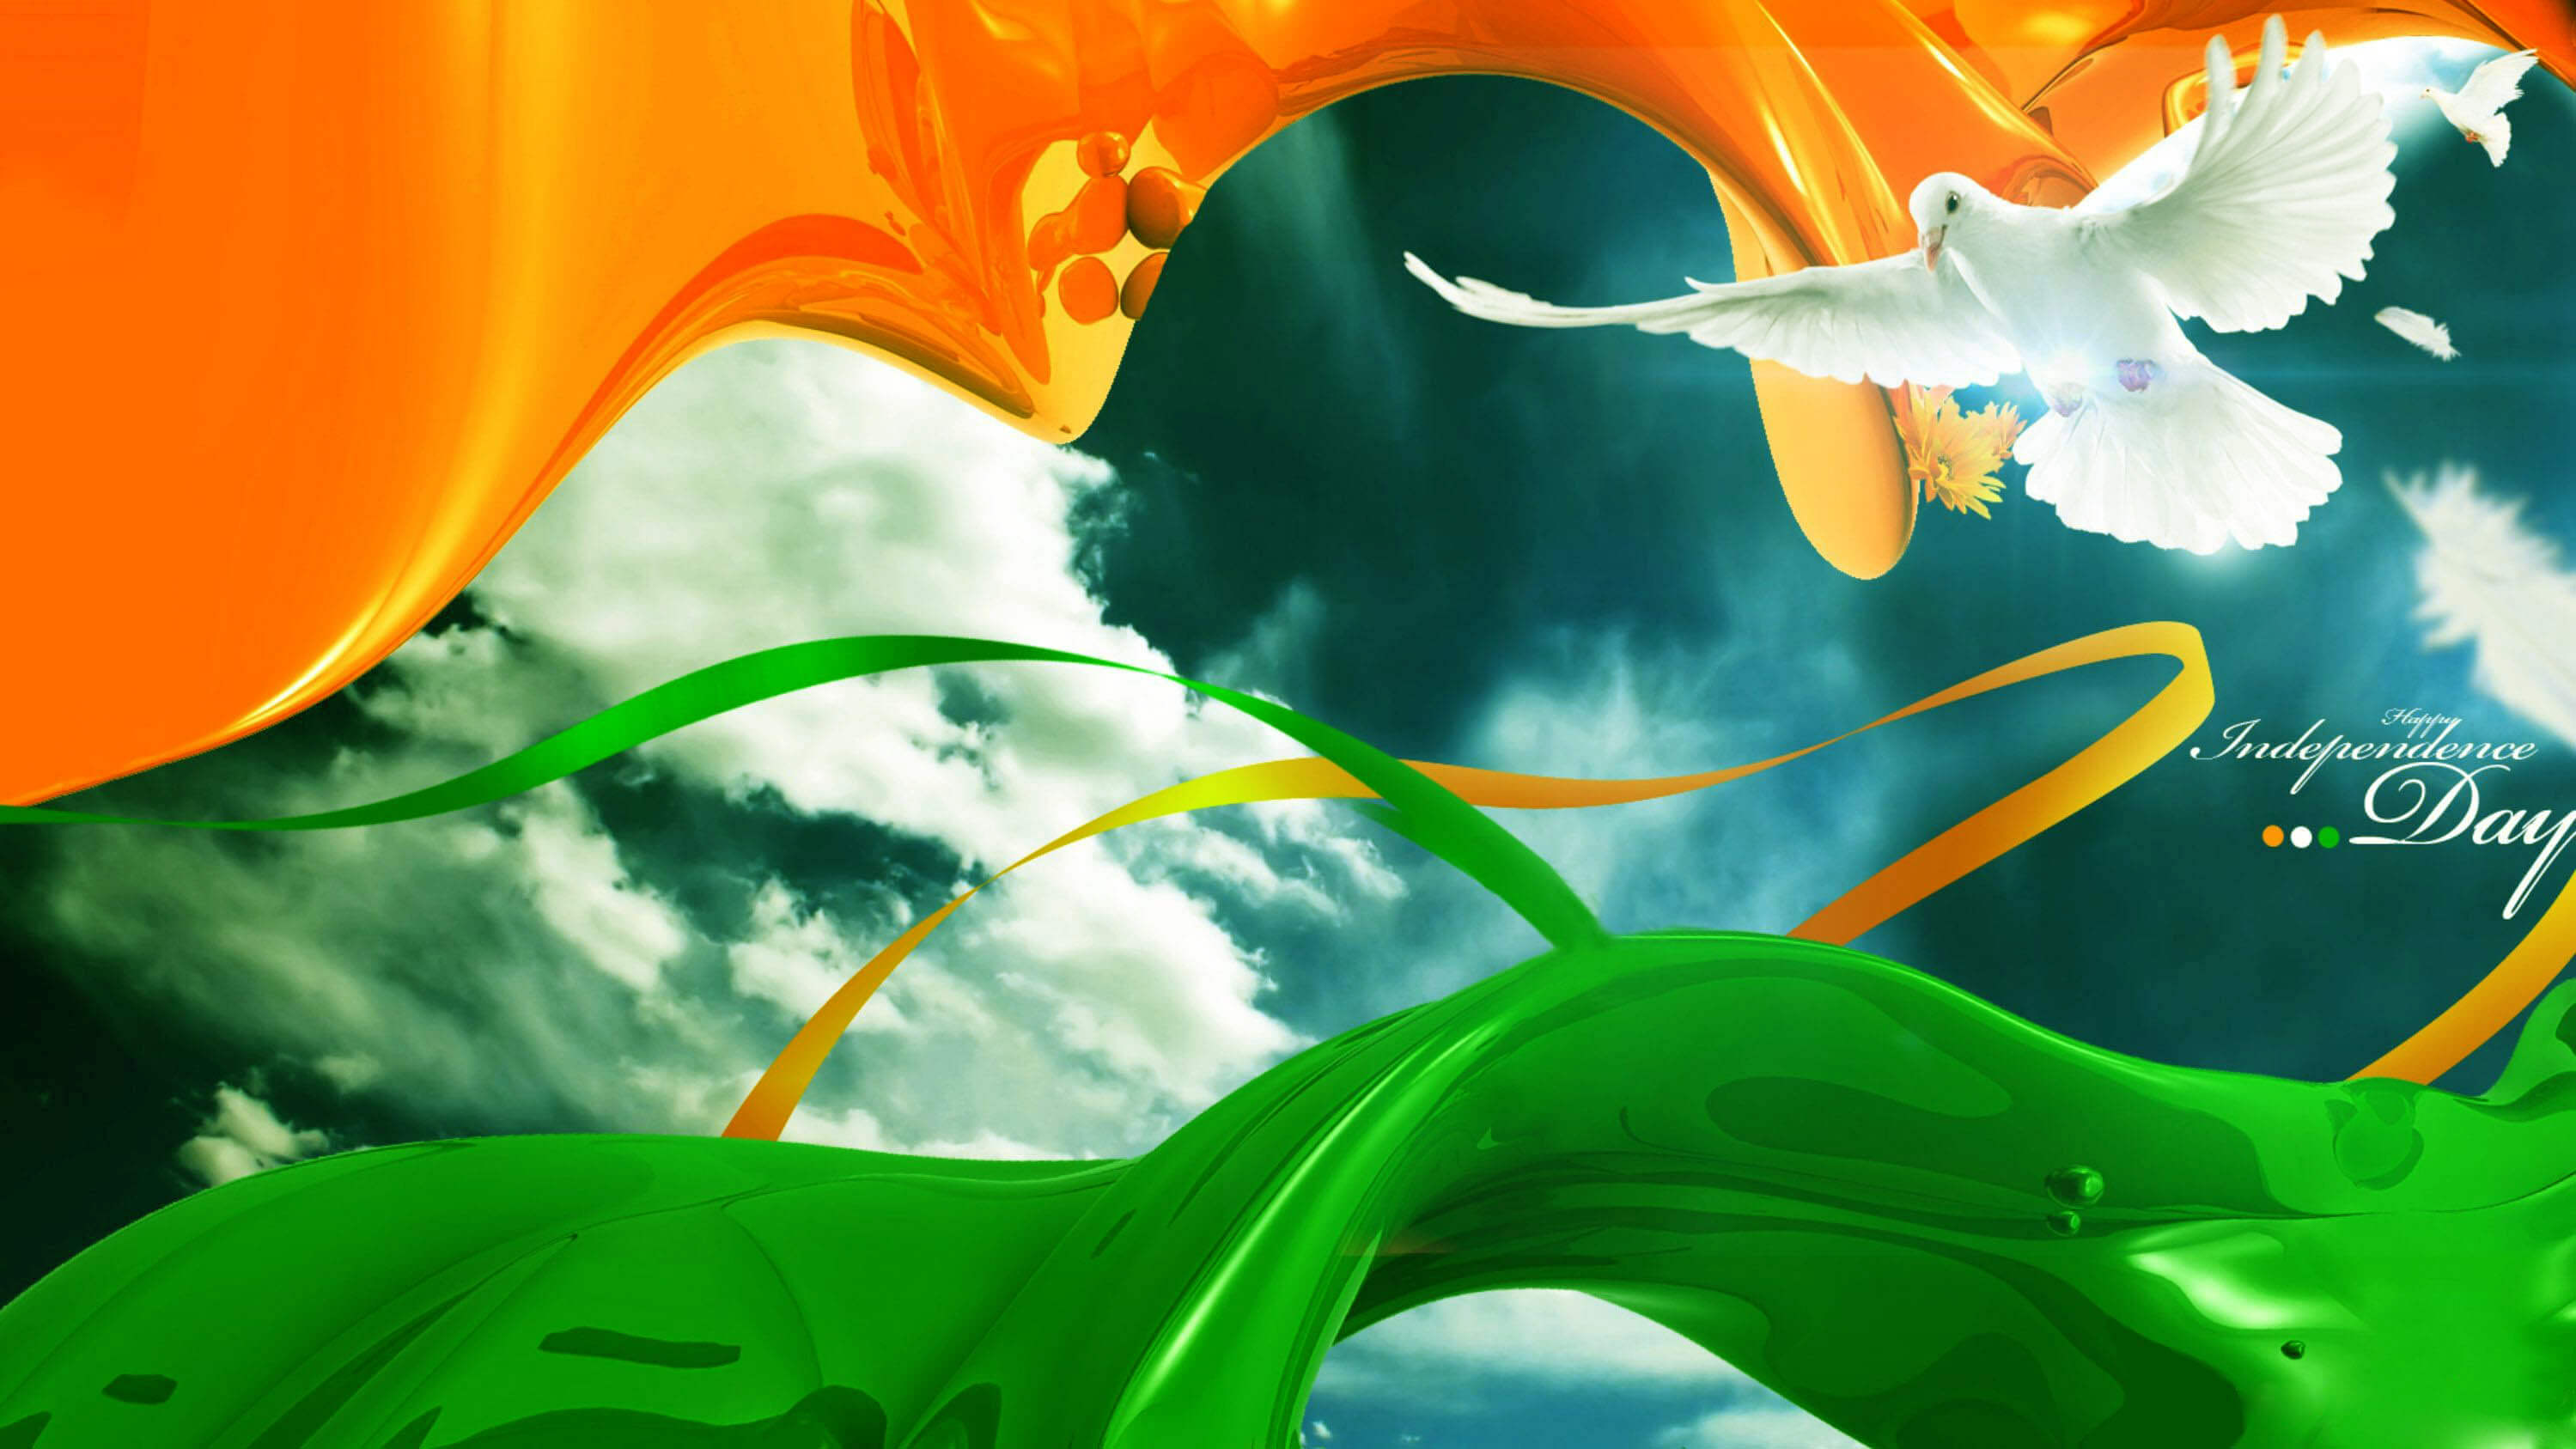 india independence day flag hd image